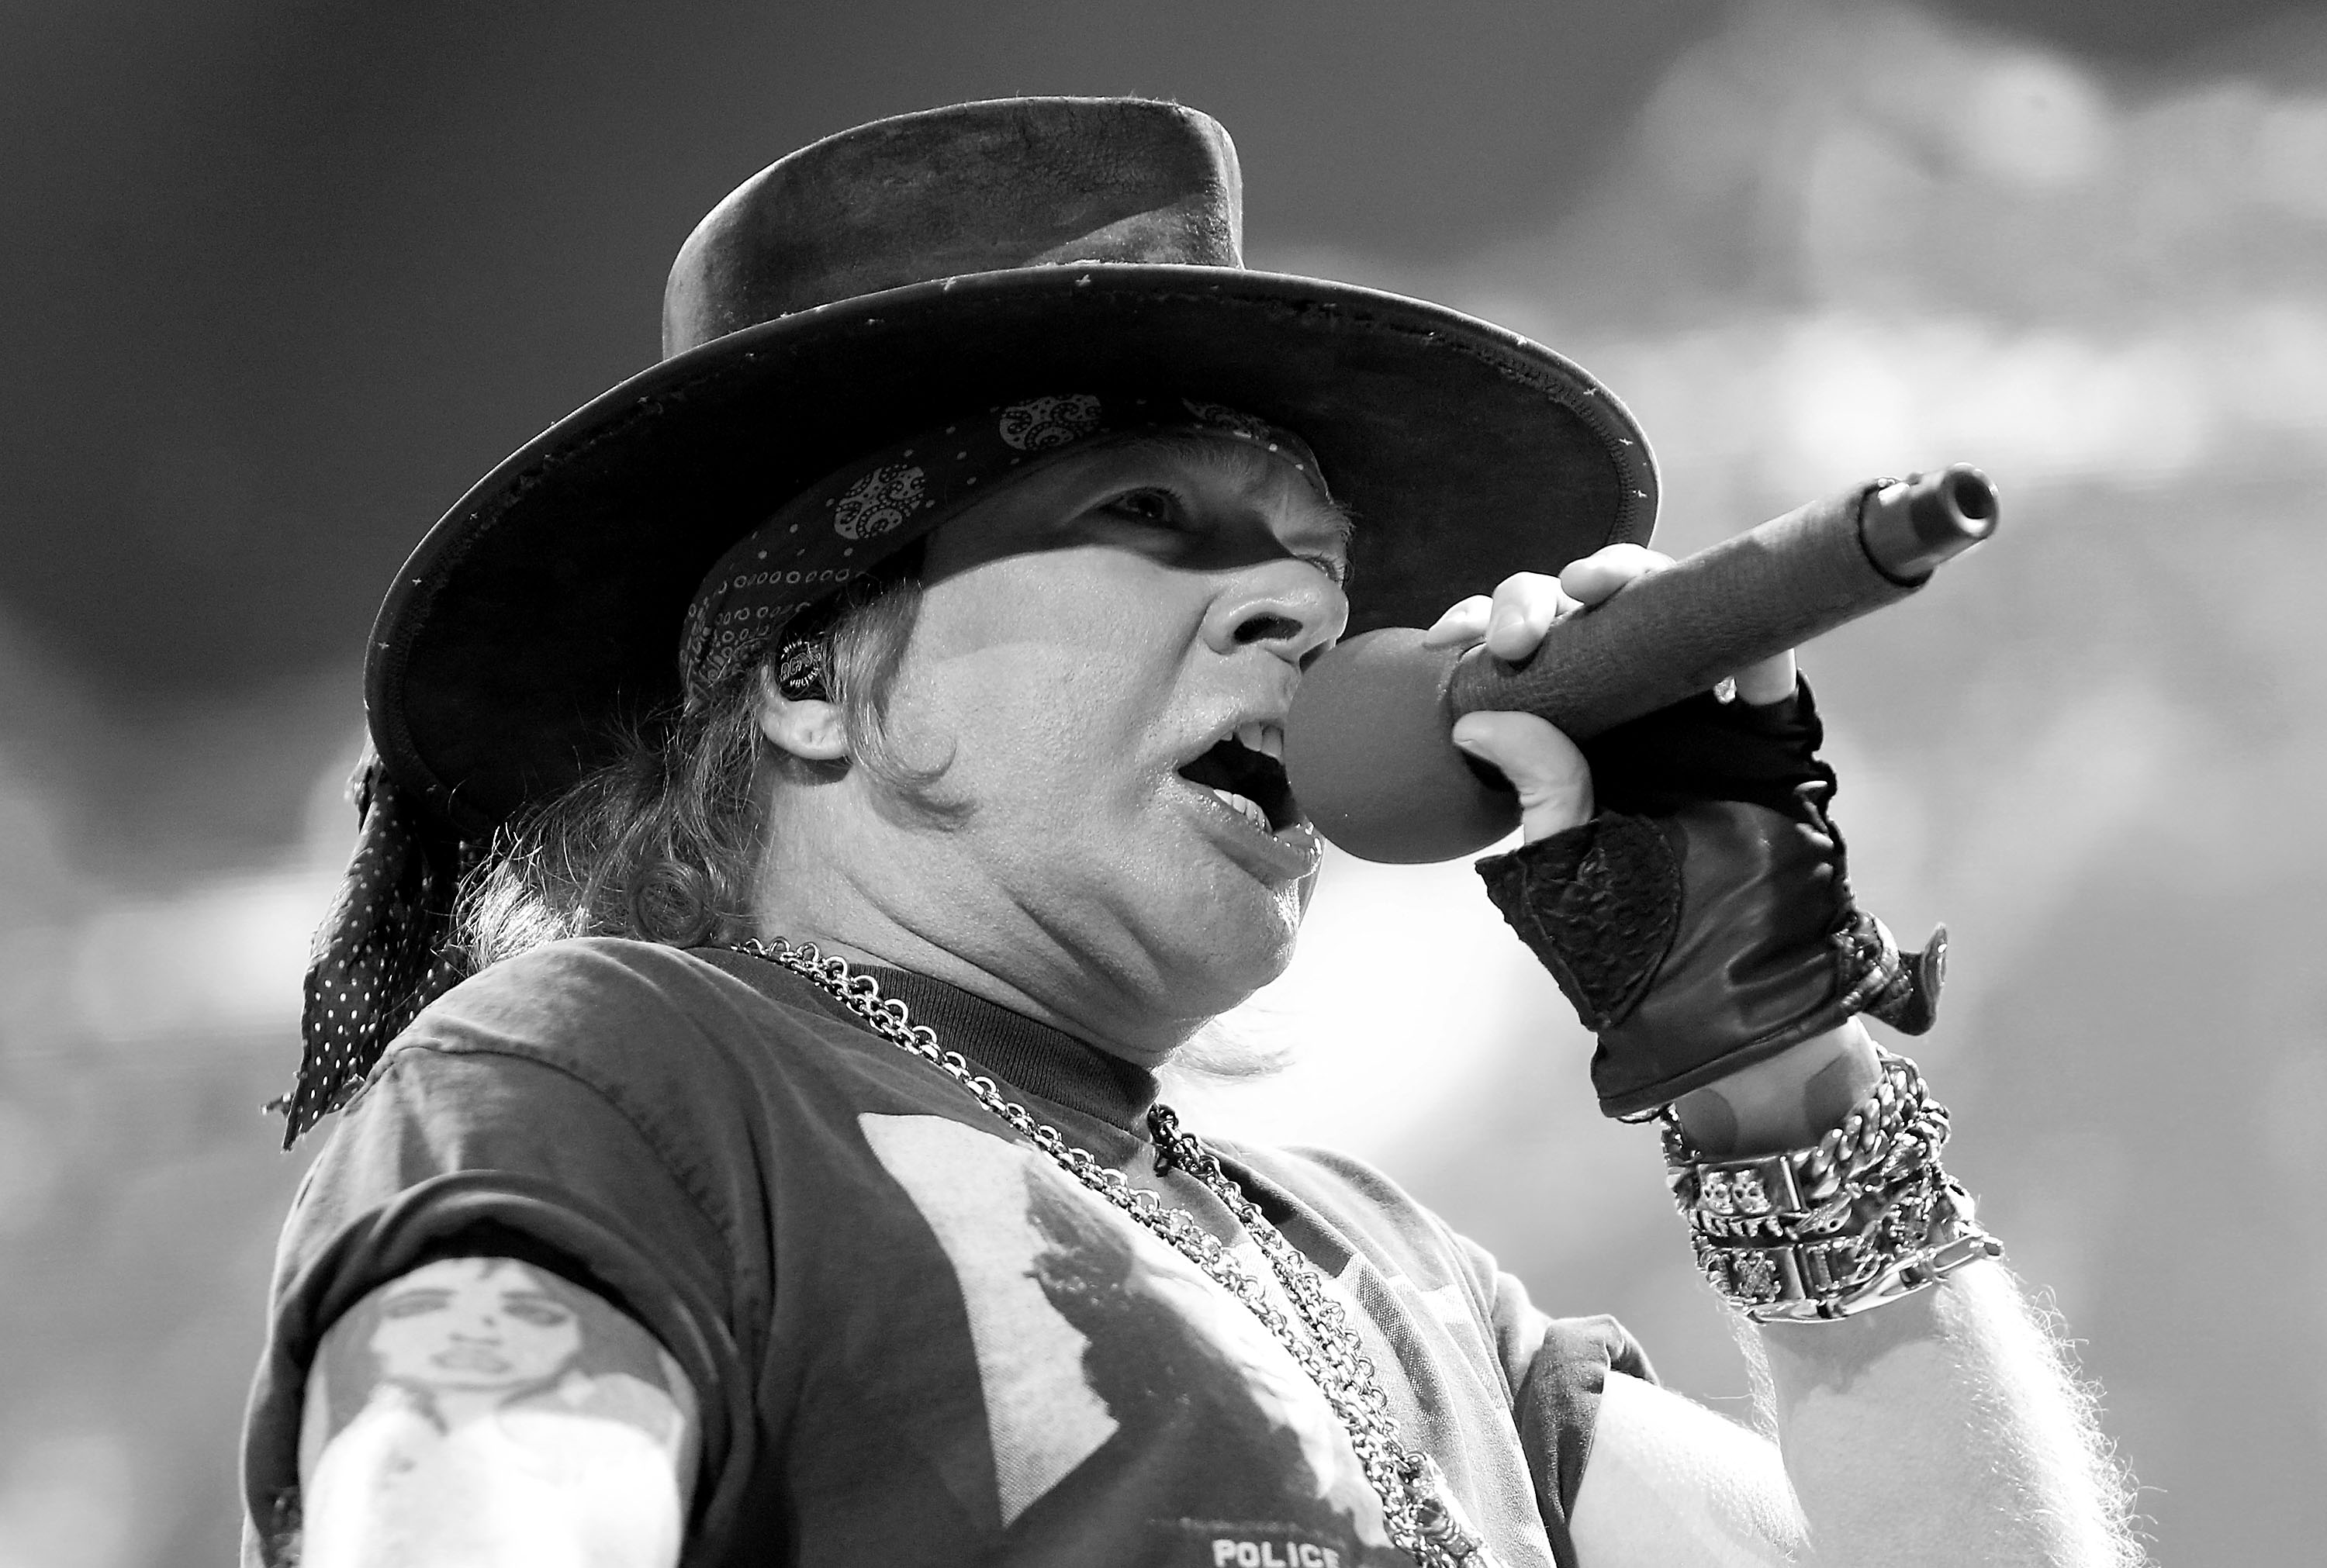 WASHINGTON, DC - SEPTEMBER 17:  (EDITORS NOTE: This image was converted to black and white using digital filters) Axl Rose of